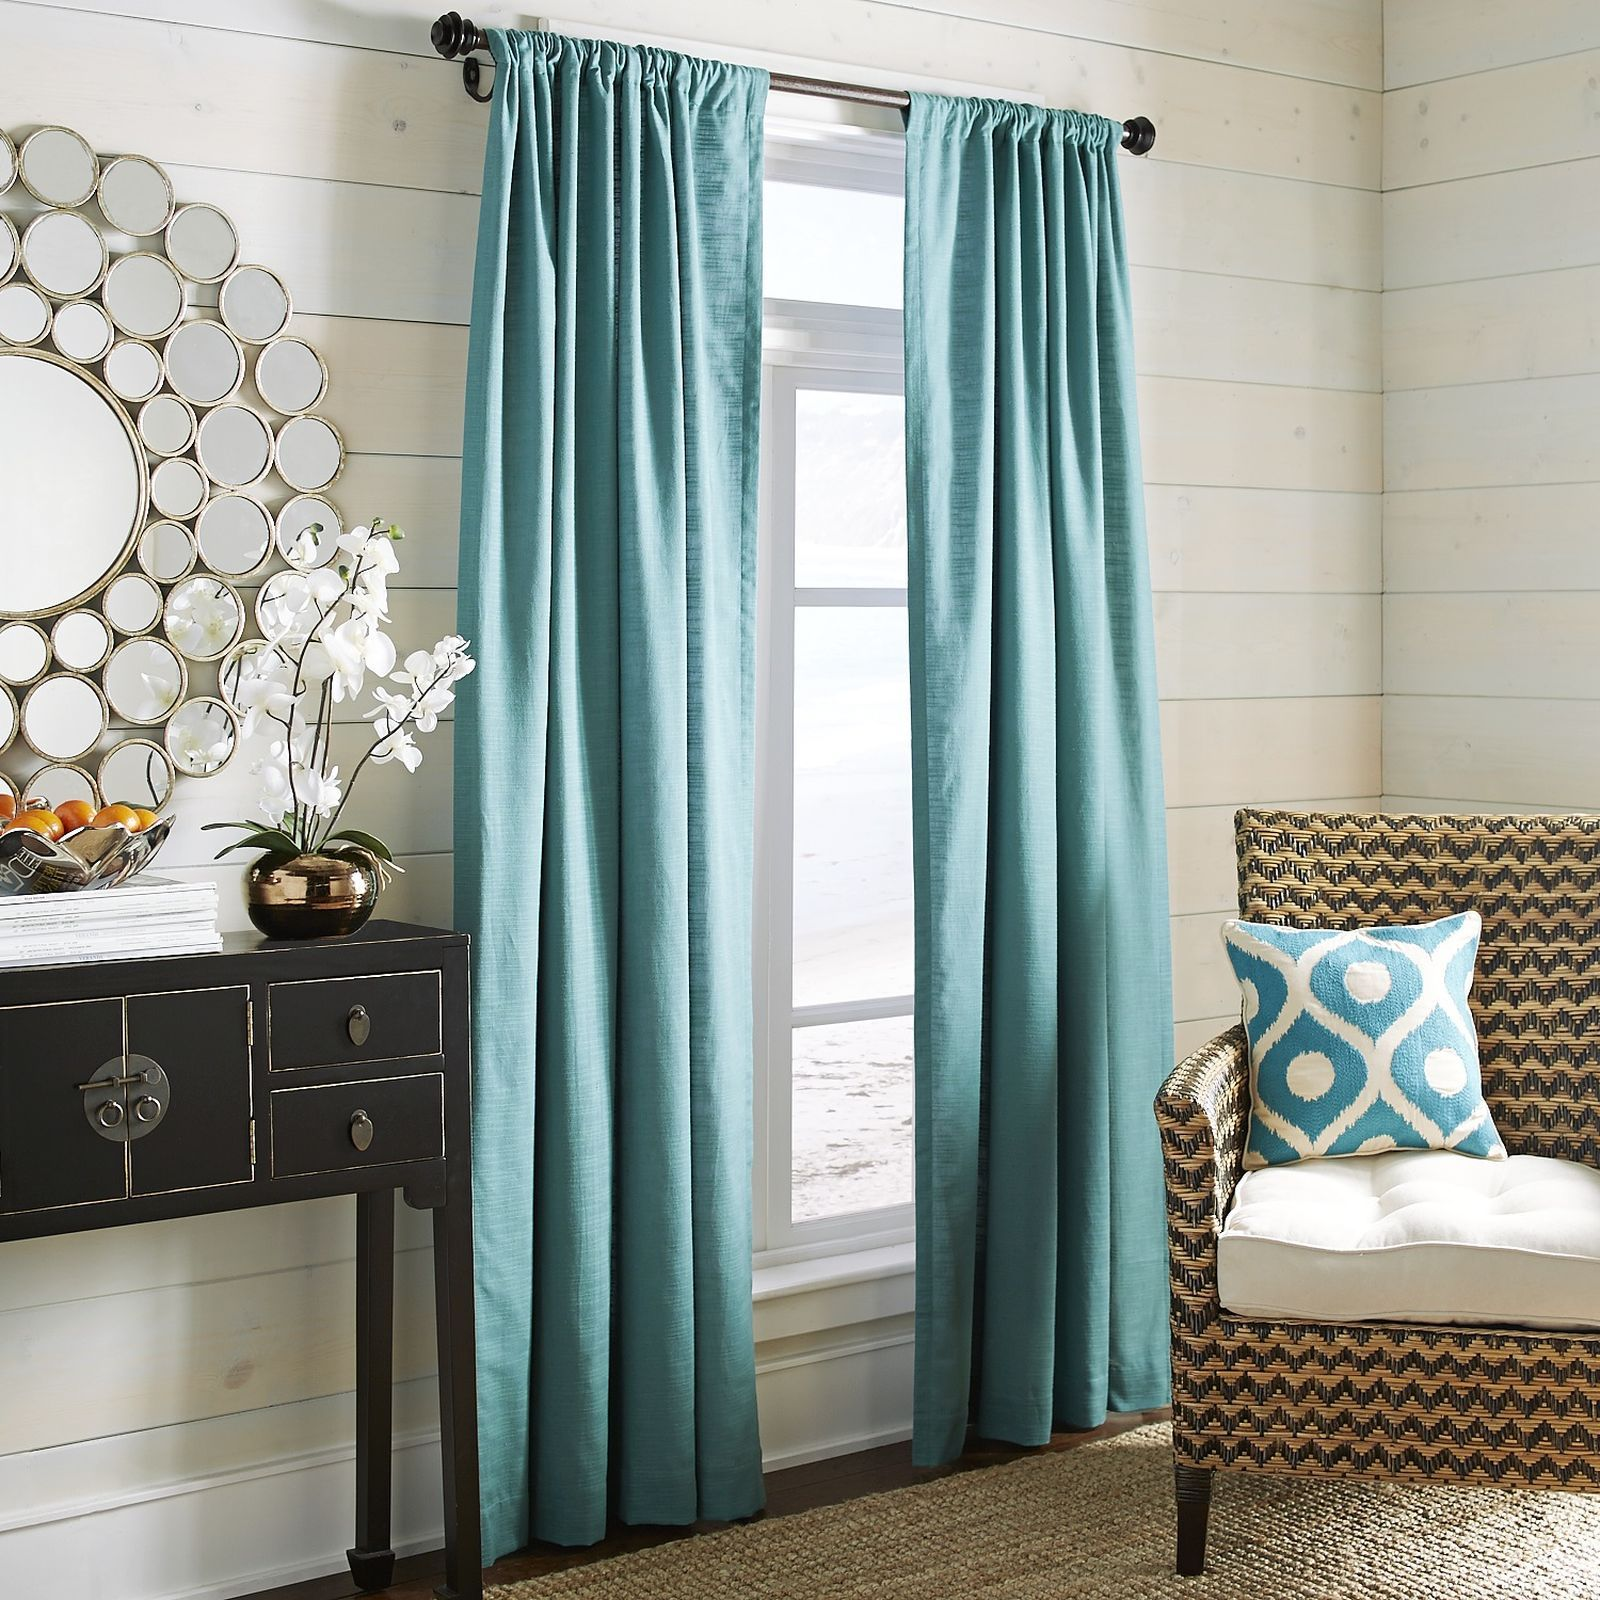 Whitley Curtain Teal Pier 1 Imports Blue Curtains